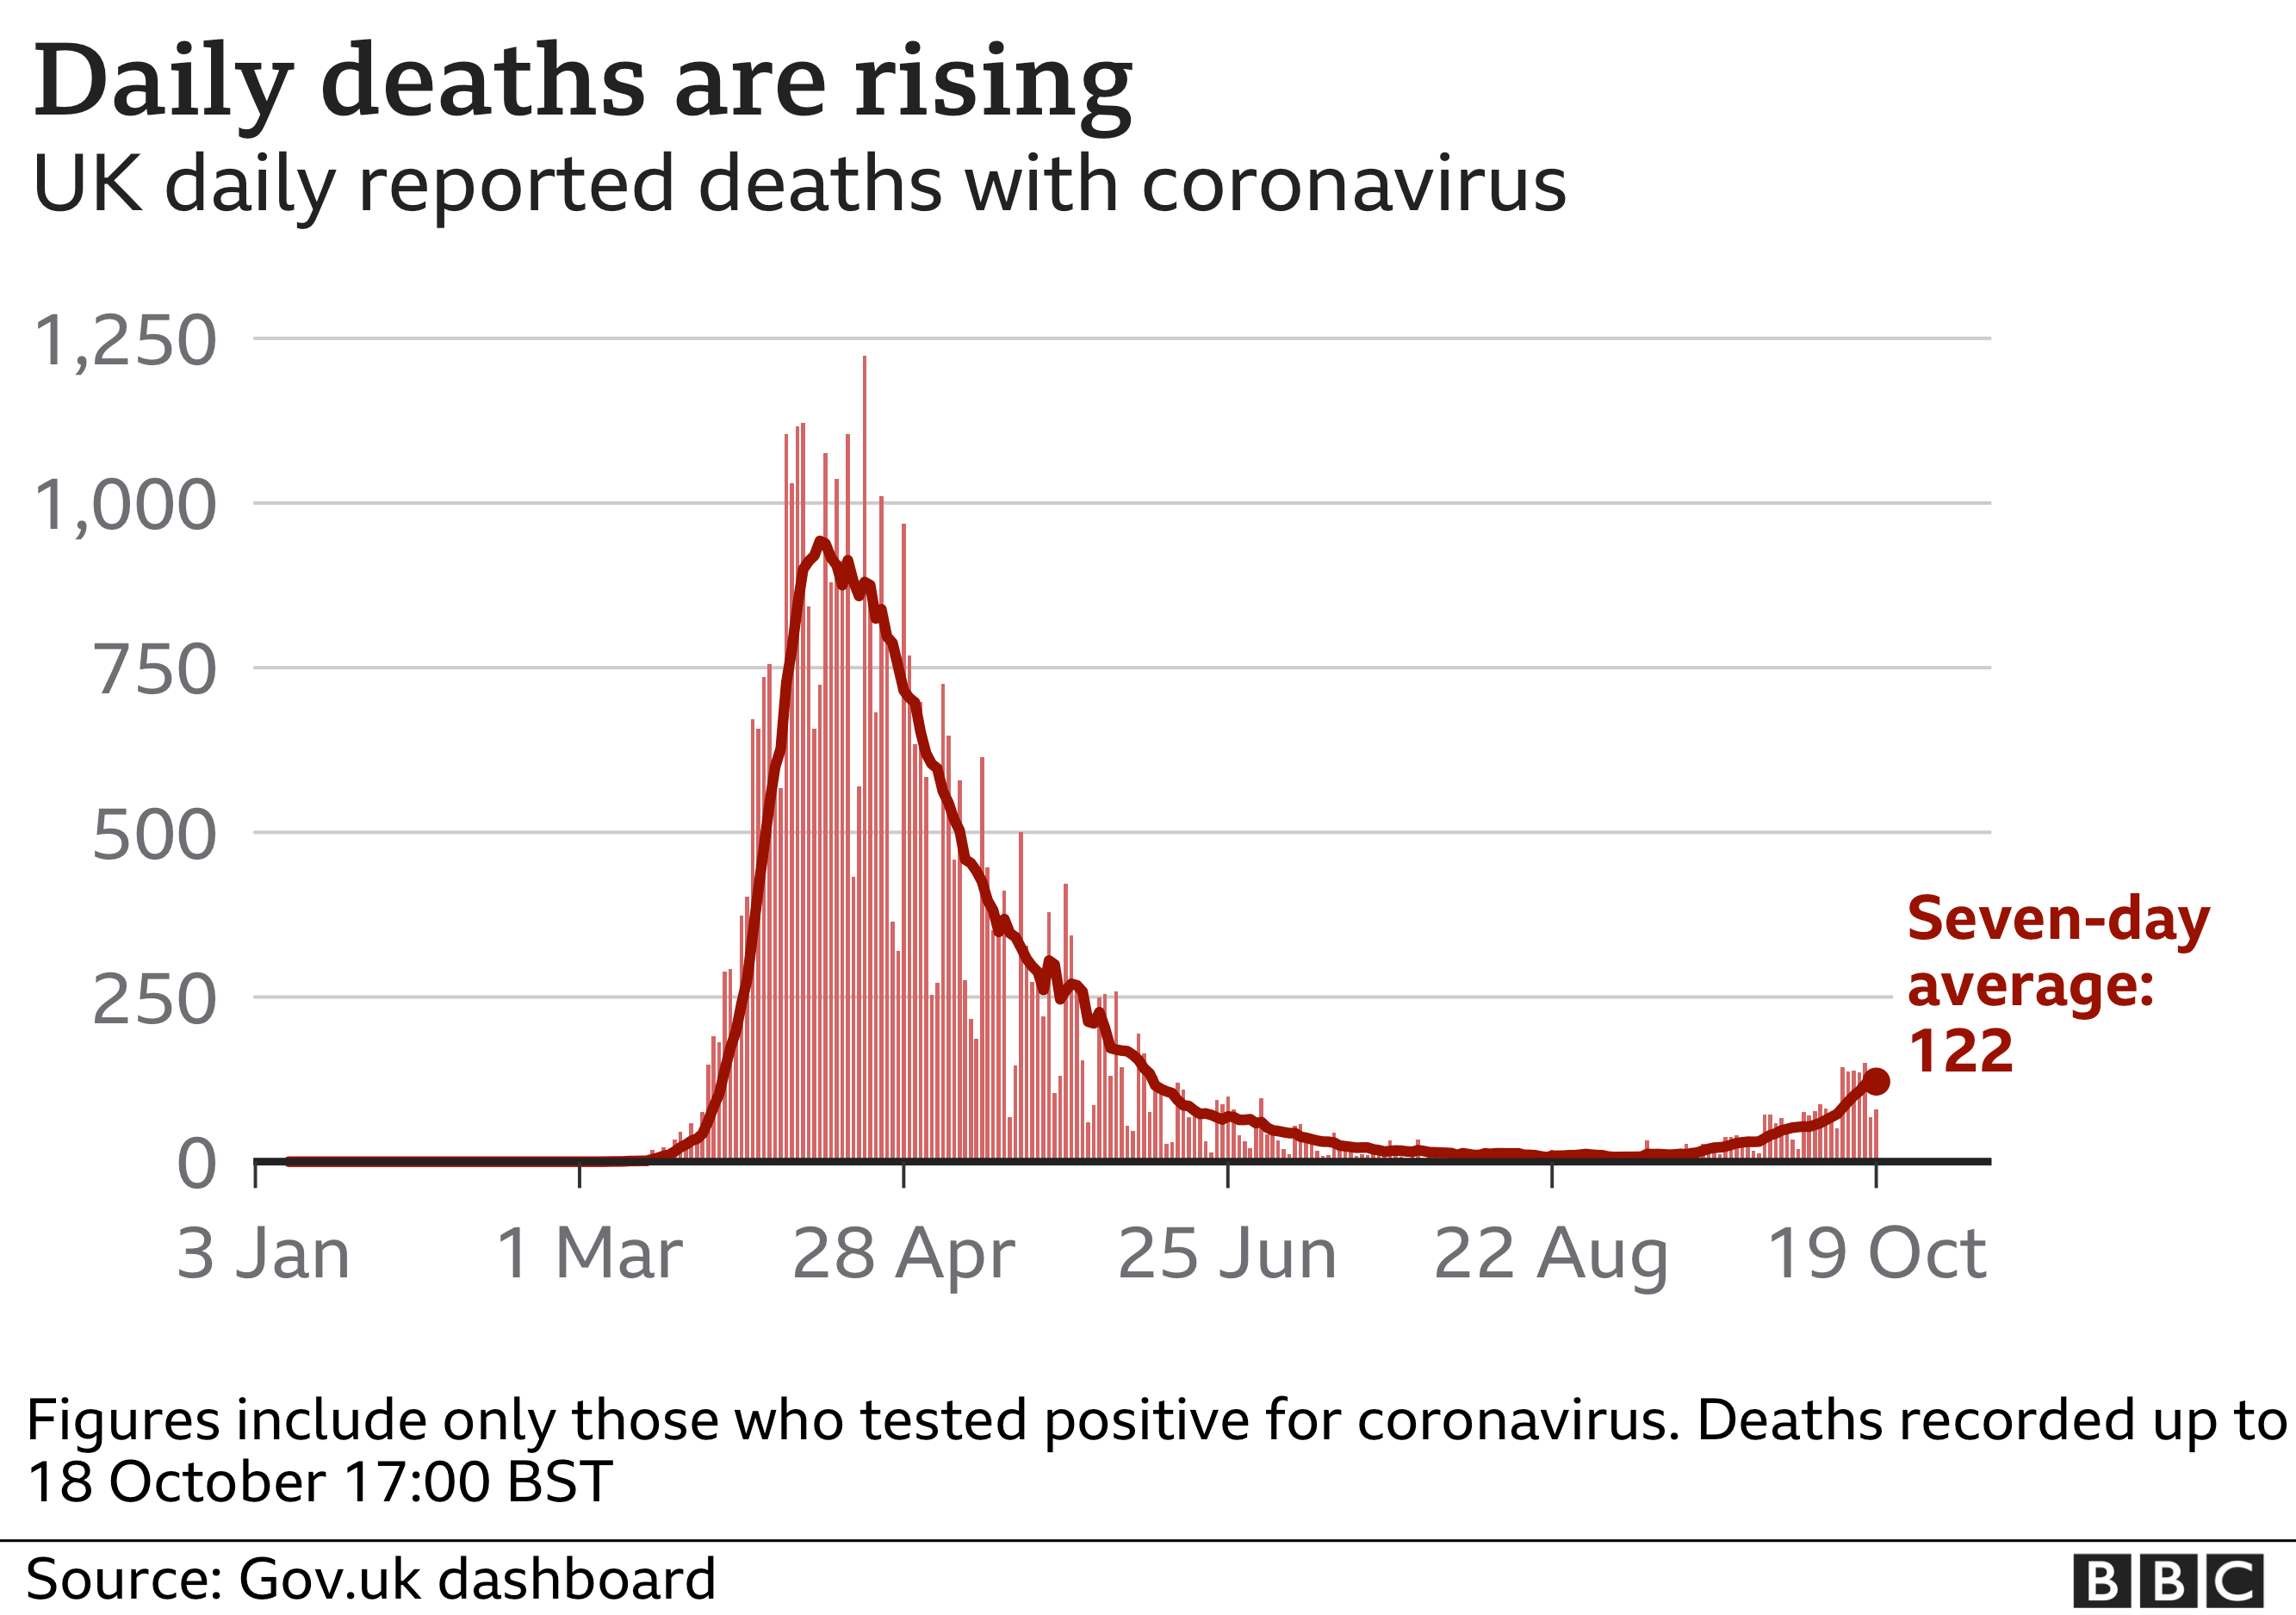 Chart shows daily deaths are rising